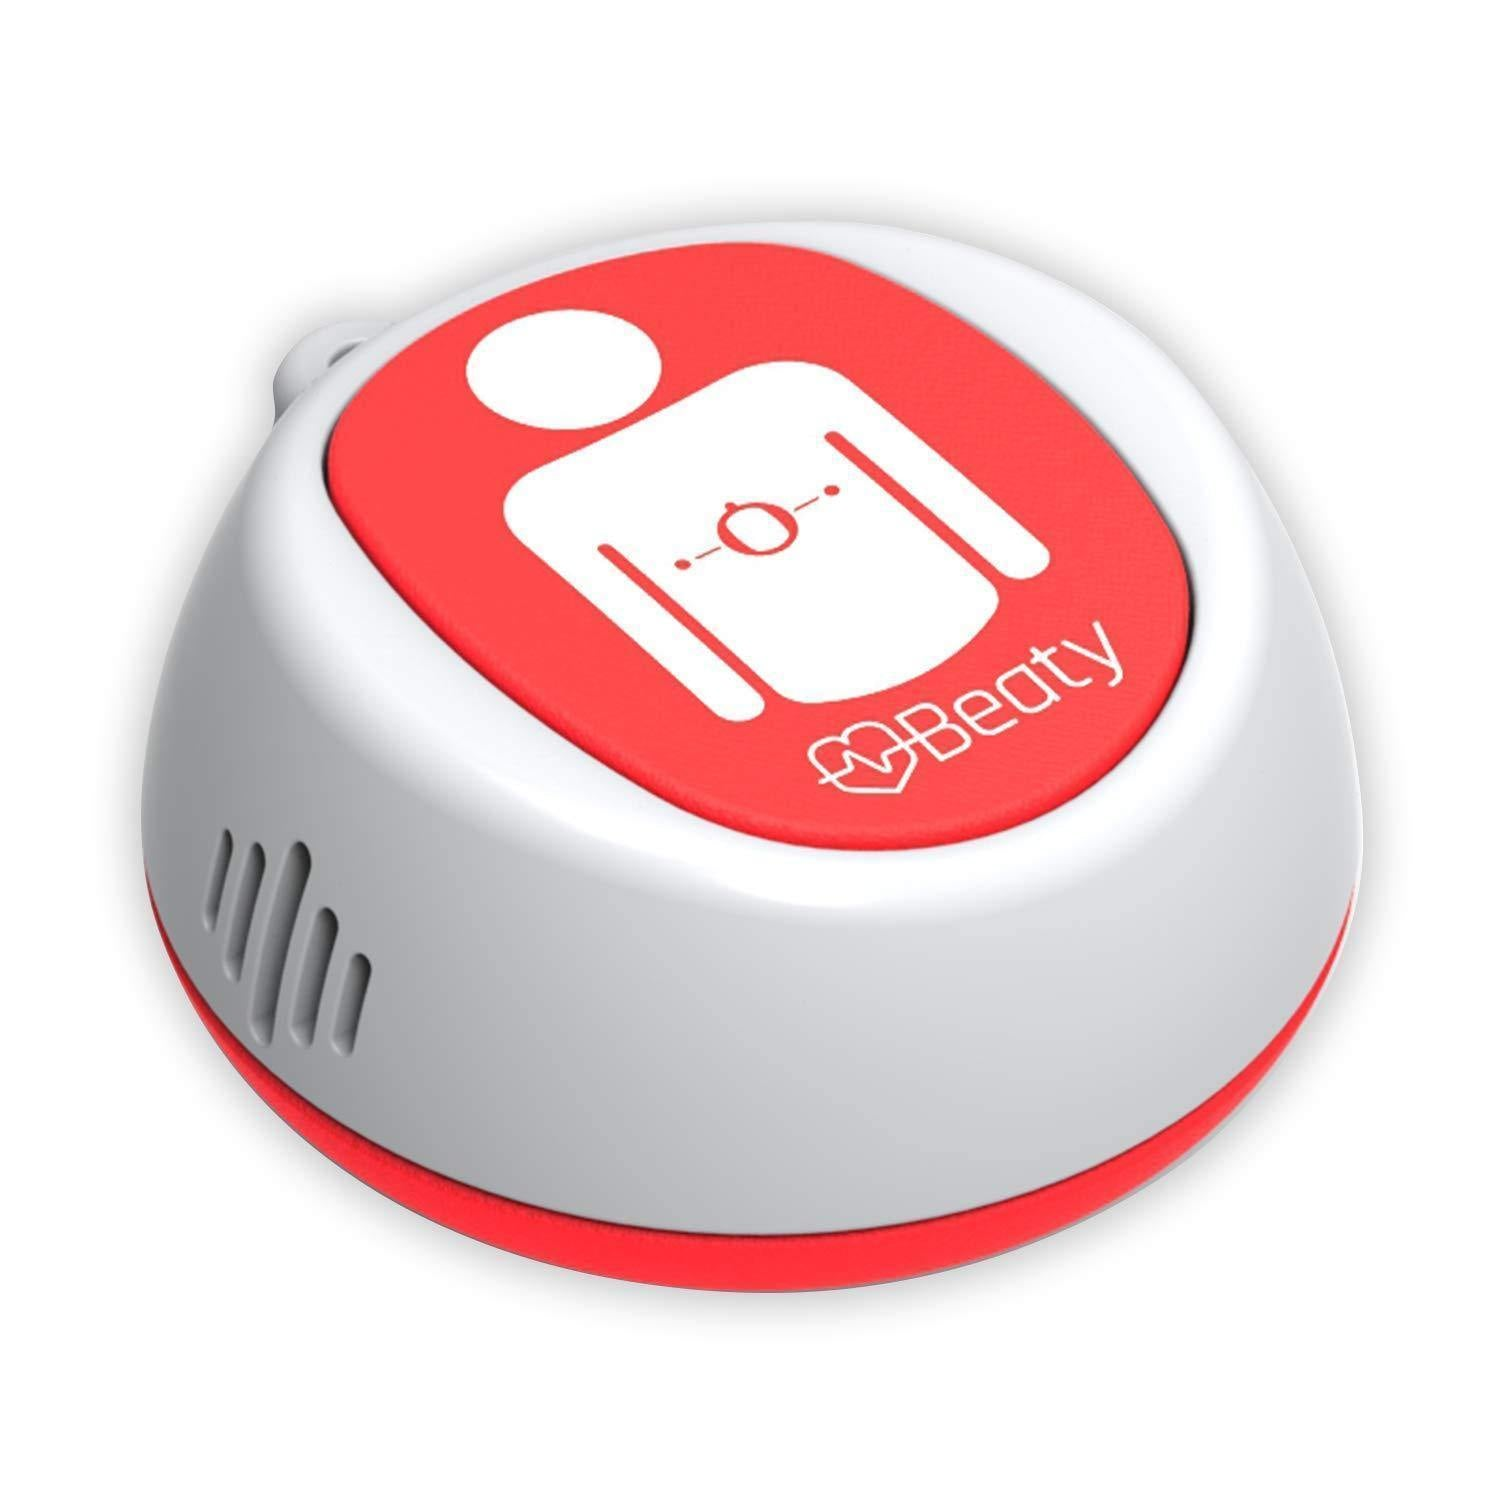 Beaty CPR Feedback Device - Medsales